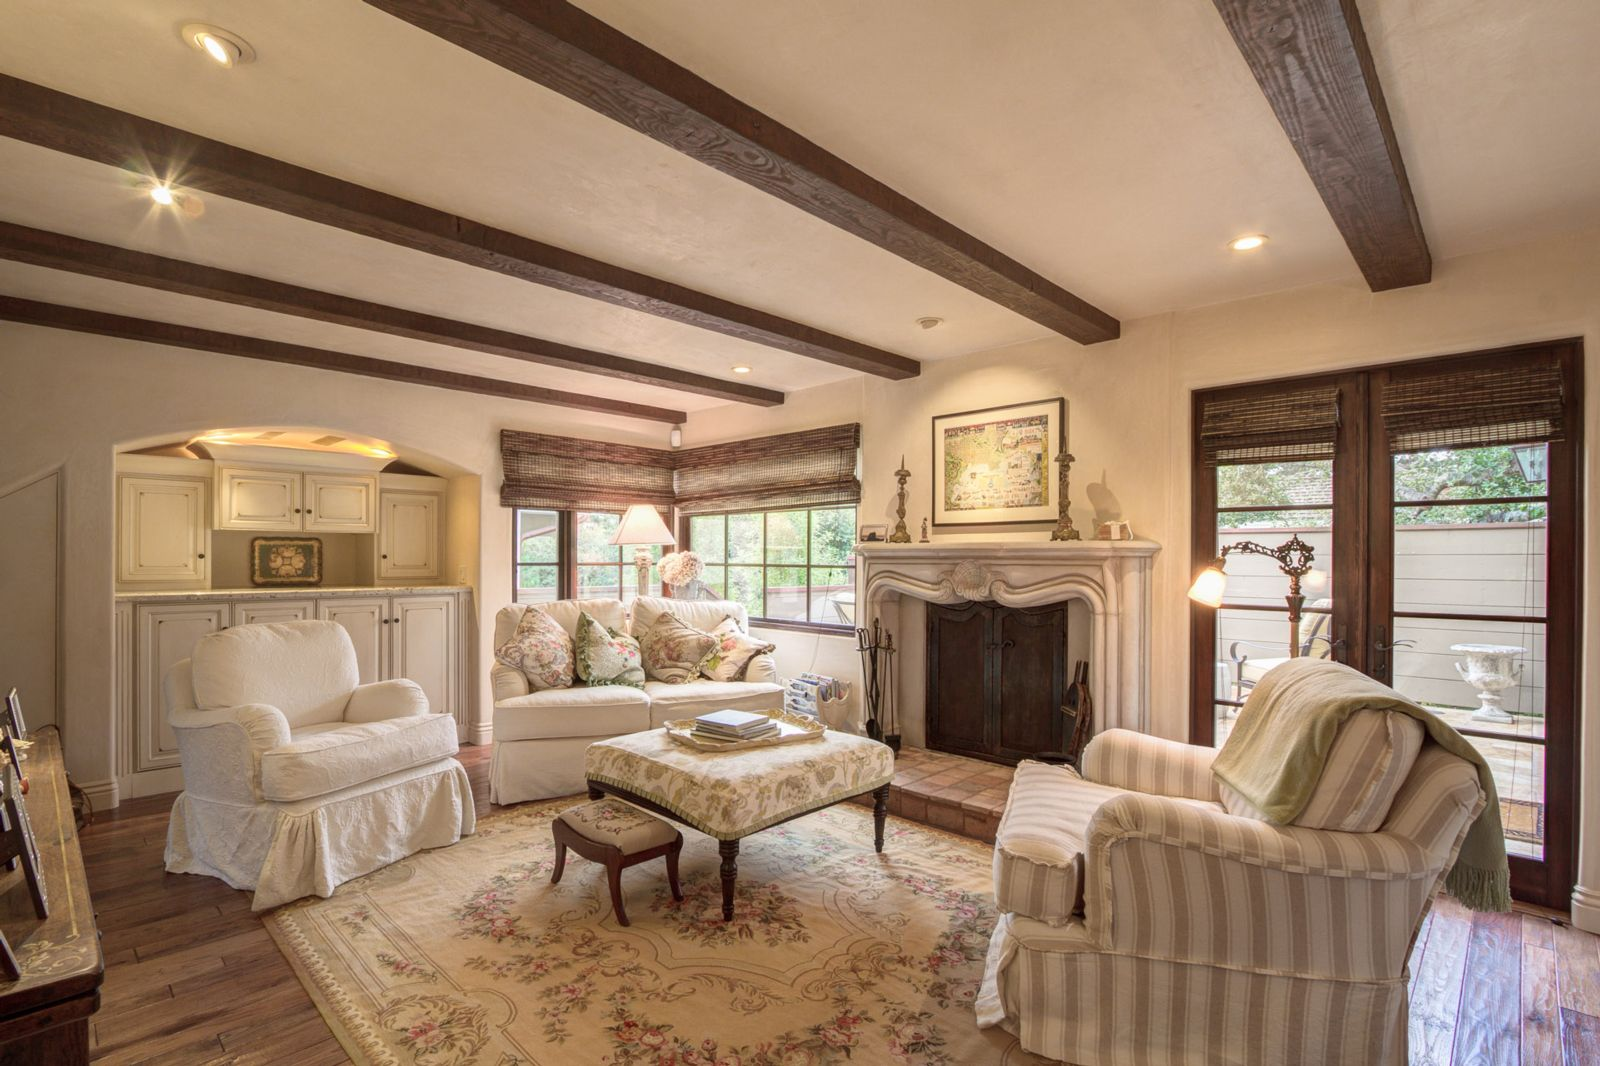 French Country Cottage Living Room: A Tired 1940 Project Turned French Country Cottage